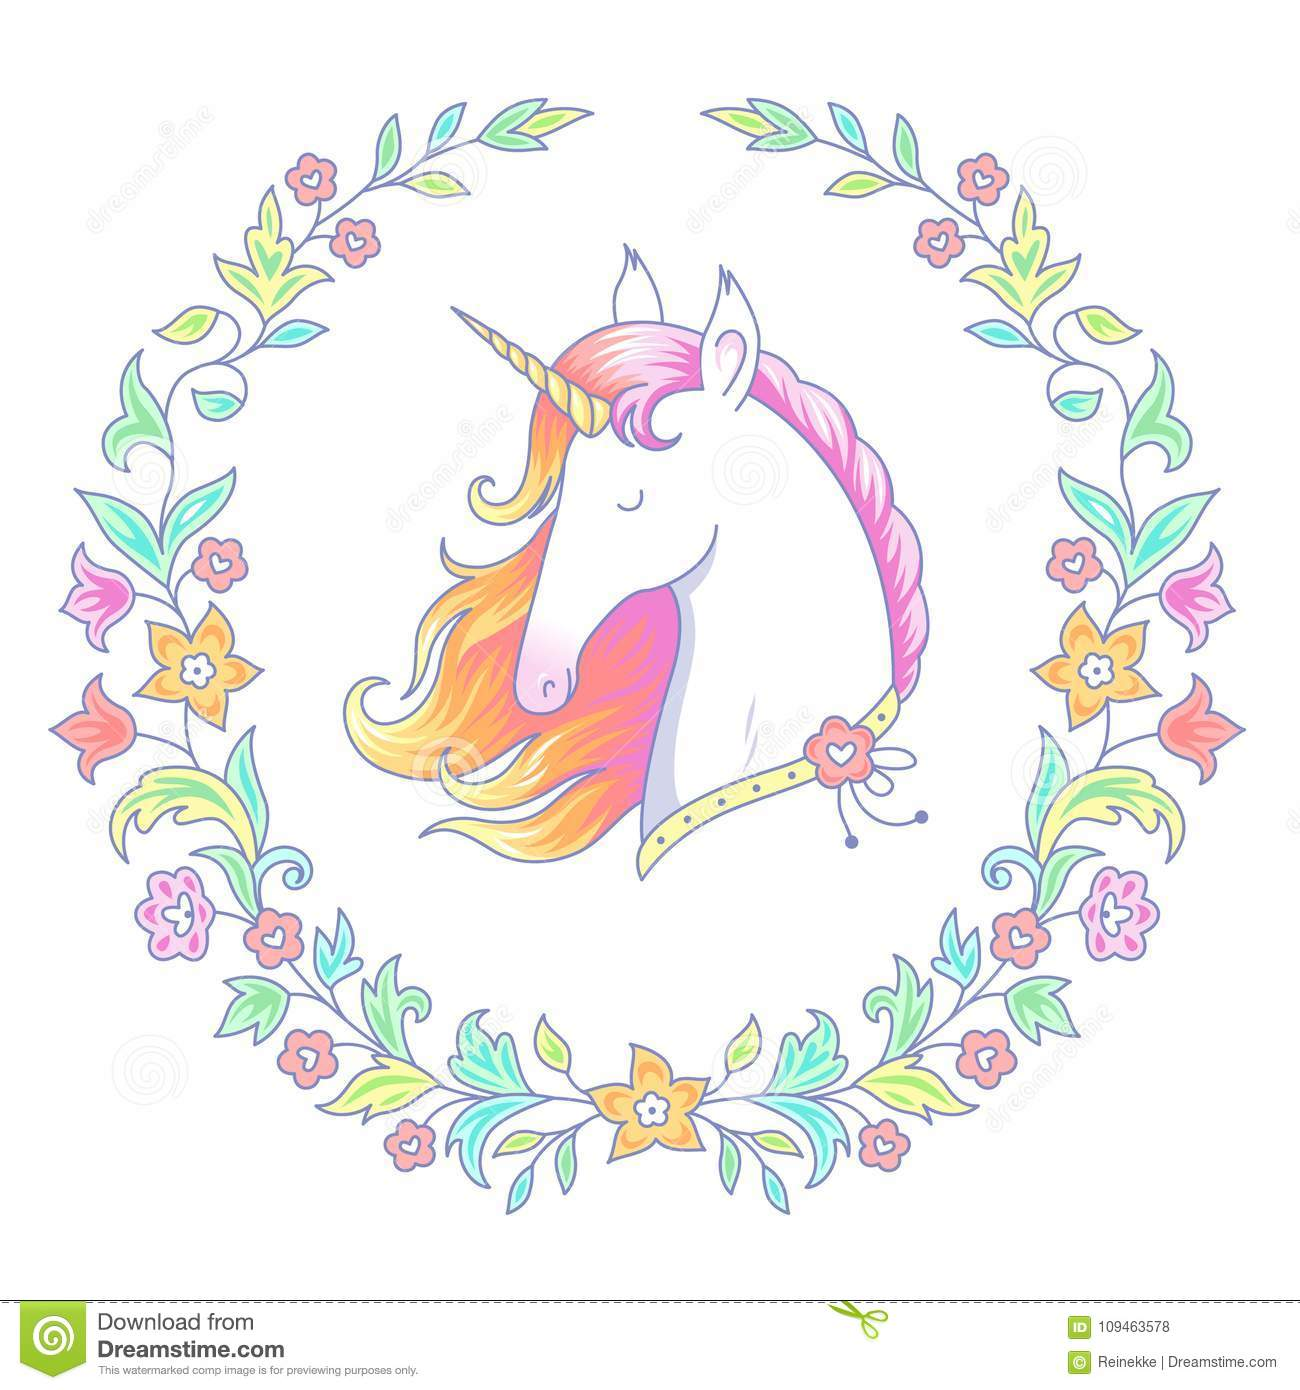 Unicorn in floral wreath stock vector. Illustration of harness ...